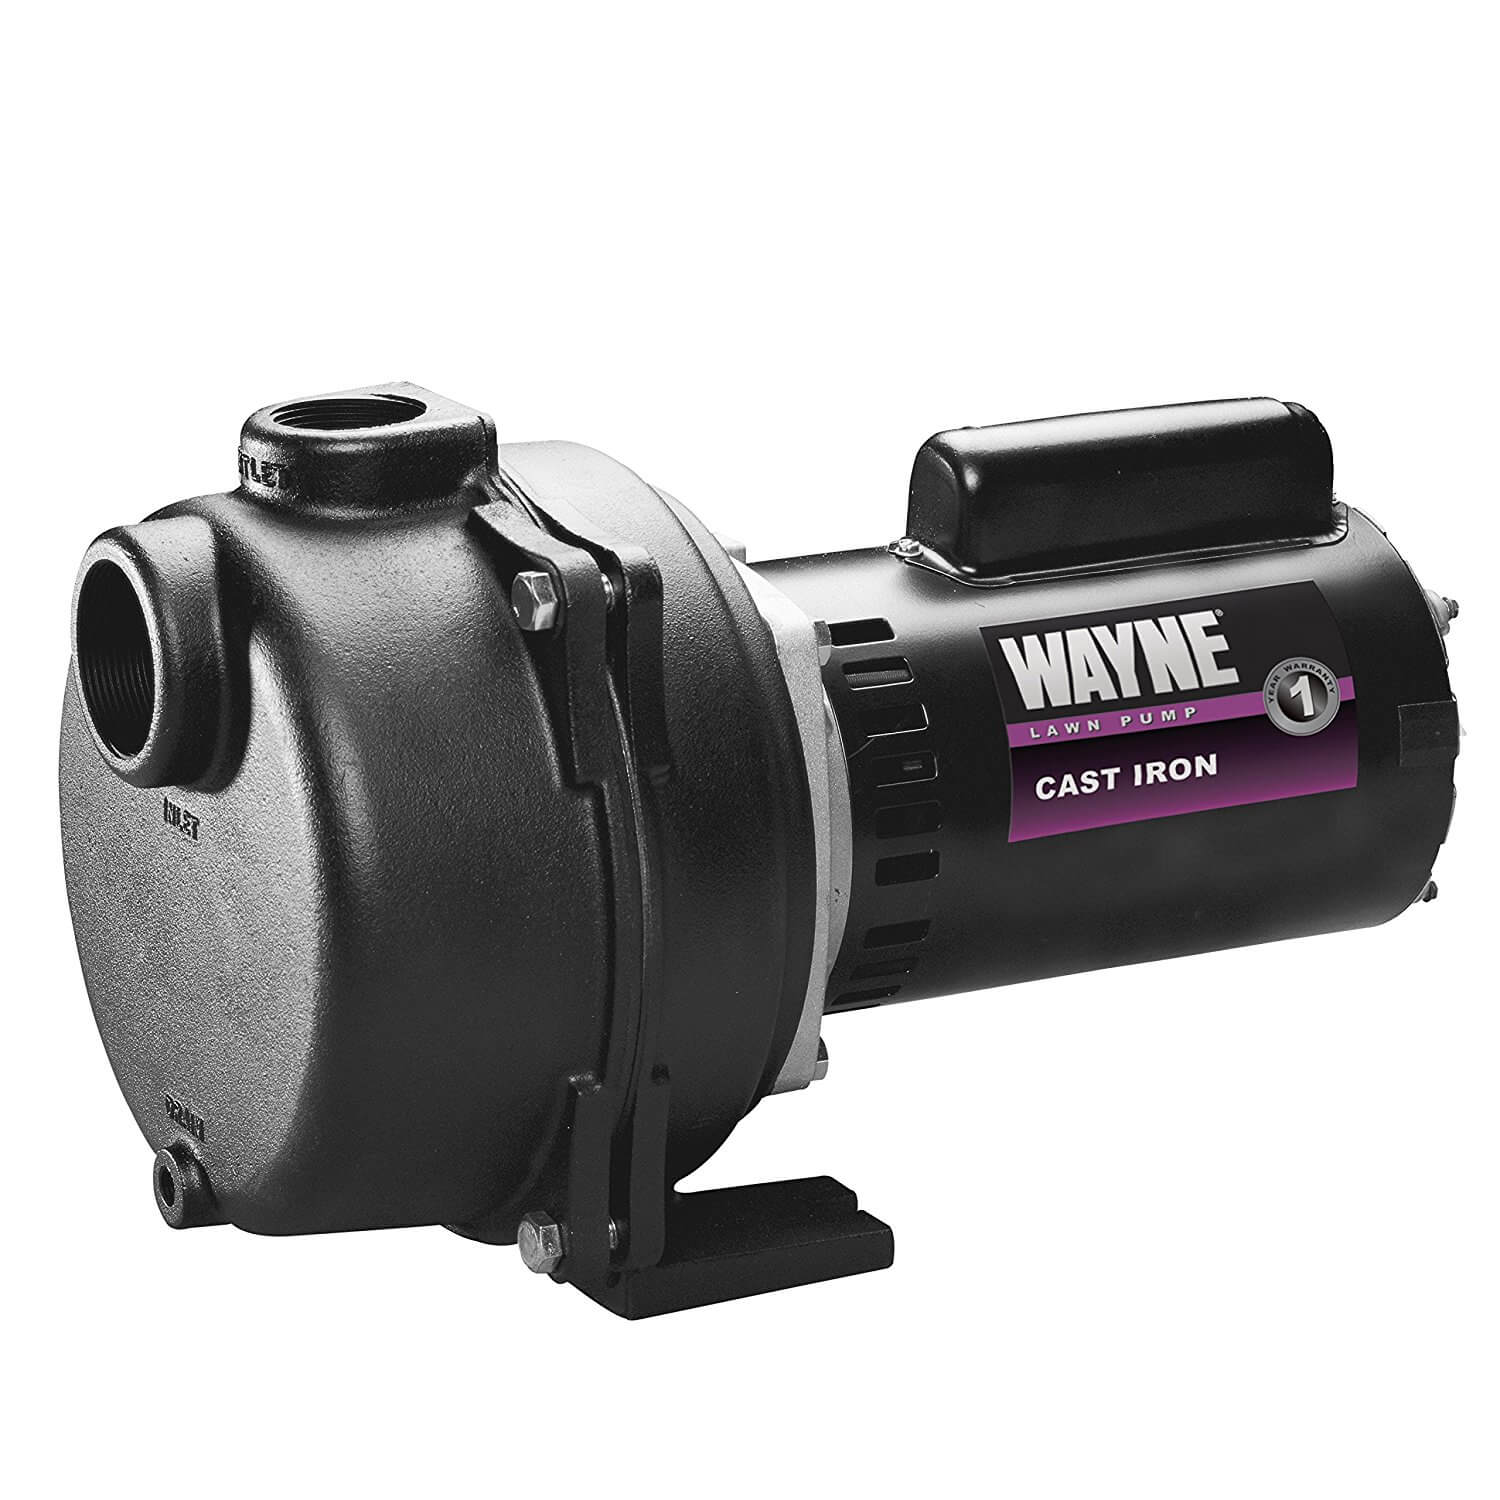 Wayne WLS200 Sprinkling Pump